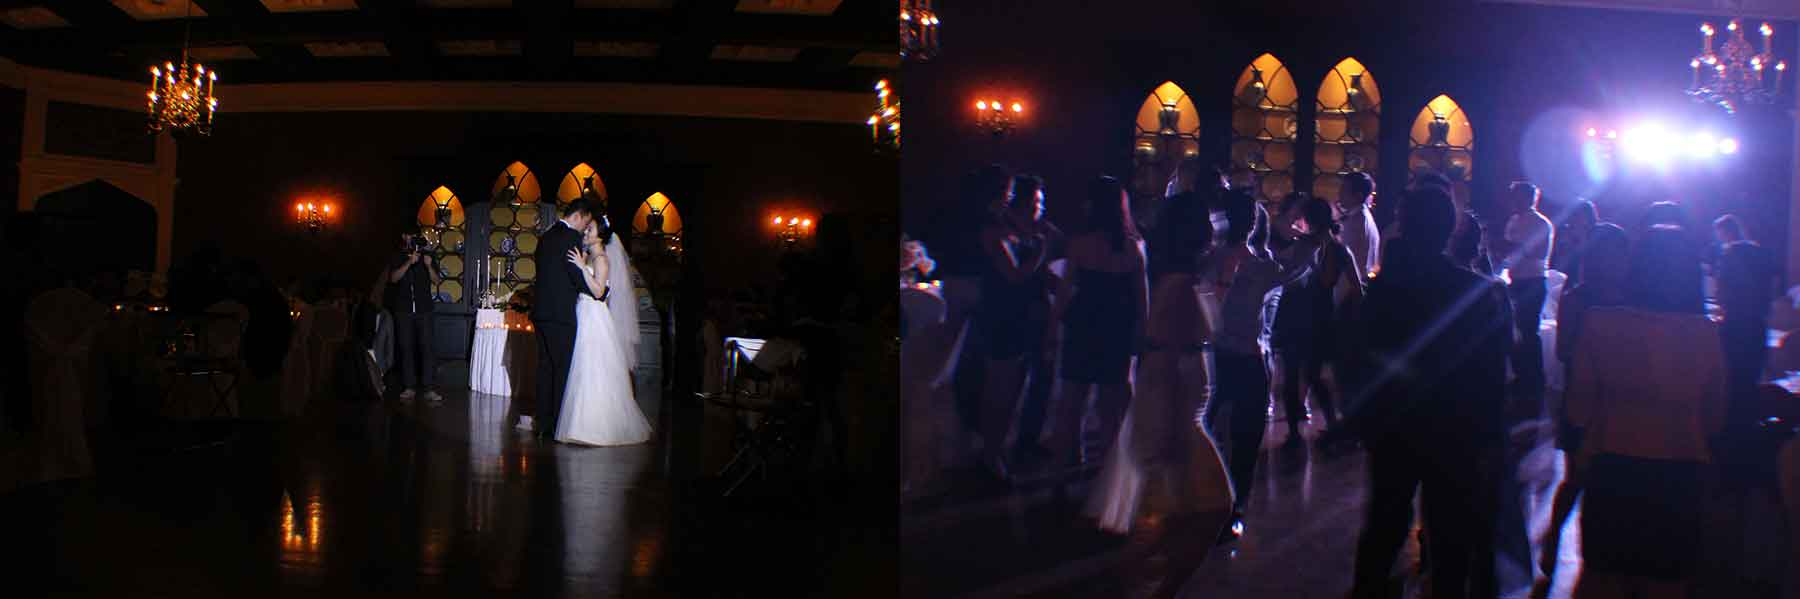 Old Mill Inn Wedding DJ Services, Old Mill Inn Wedding